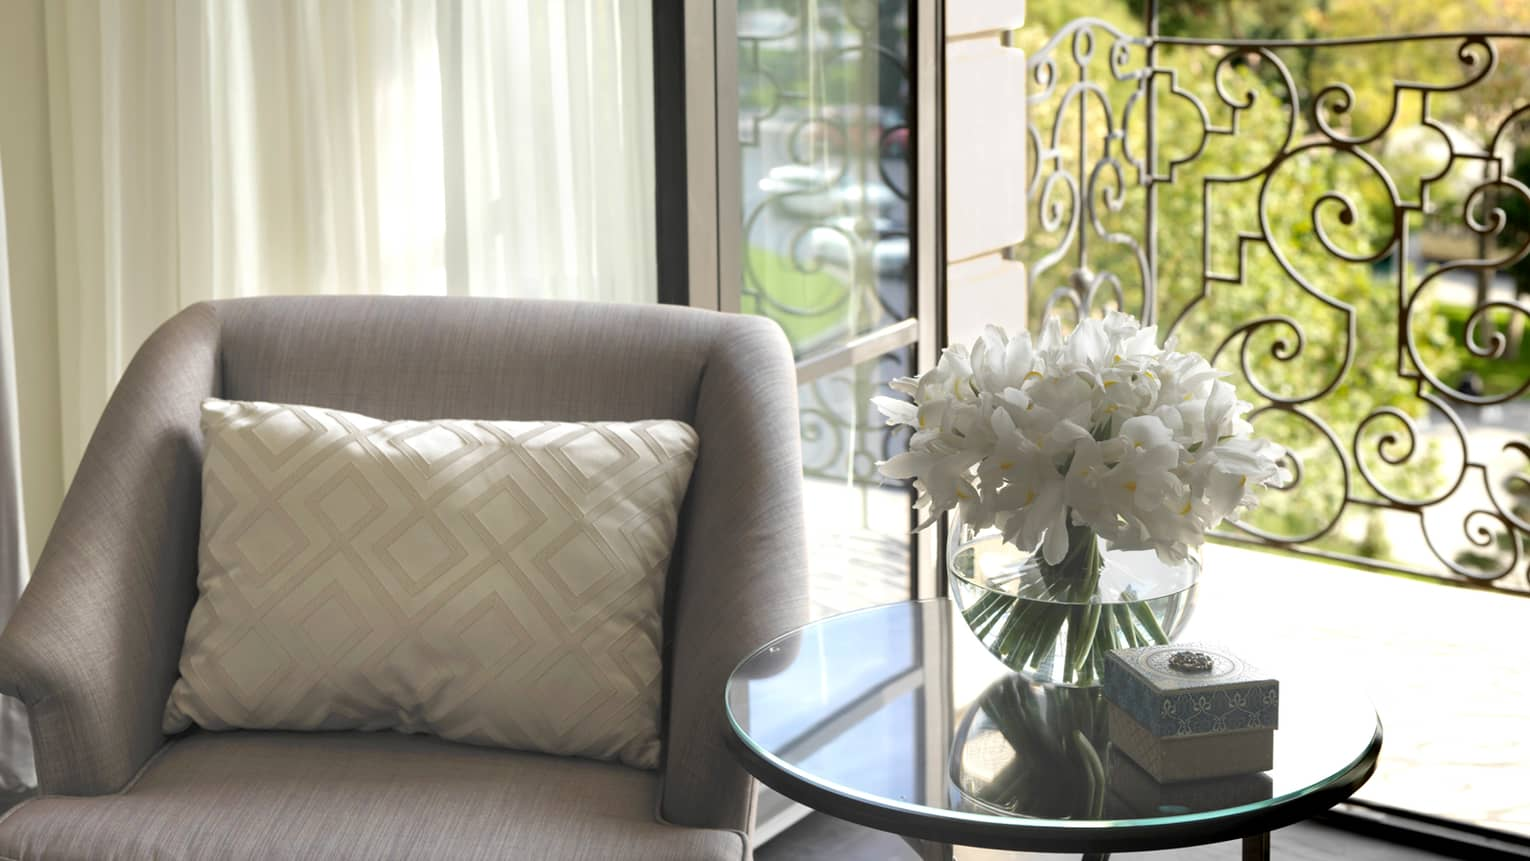 Close up of grey armchair with white accent pillow, glass table and vase with white flowers in sunny window